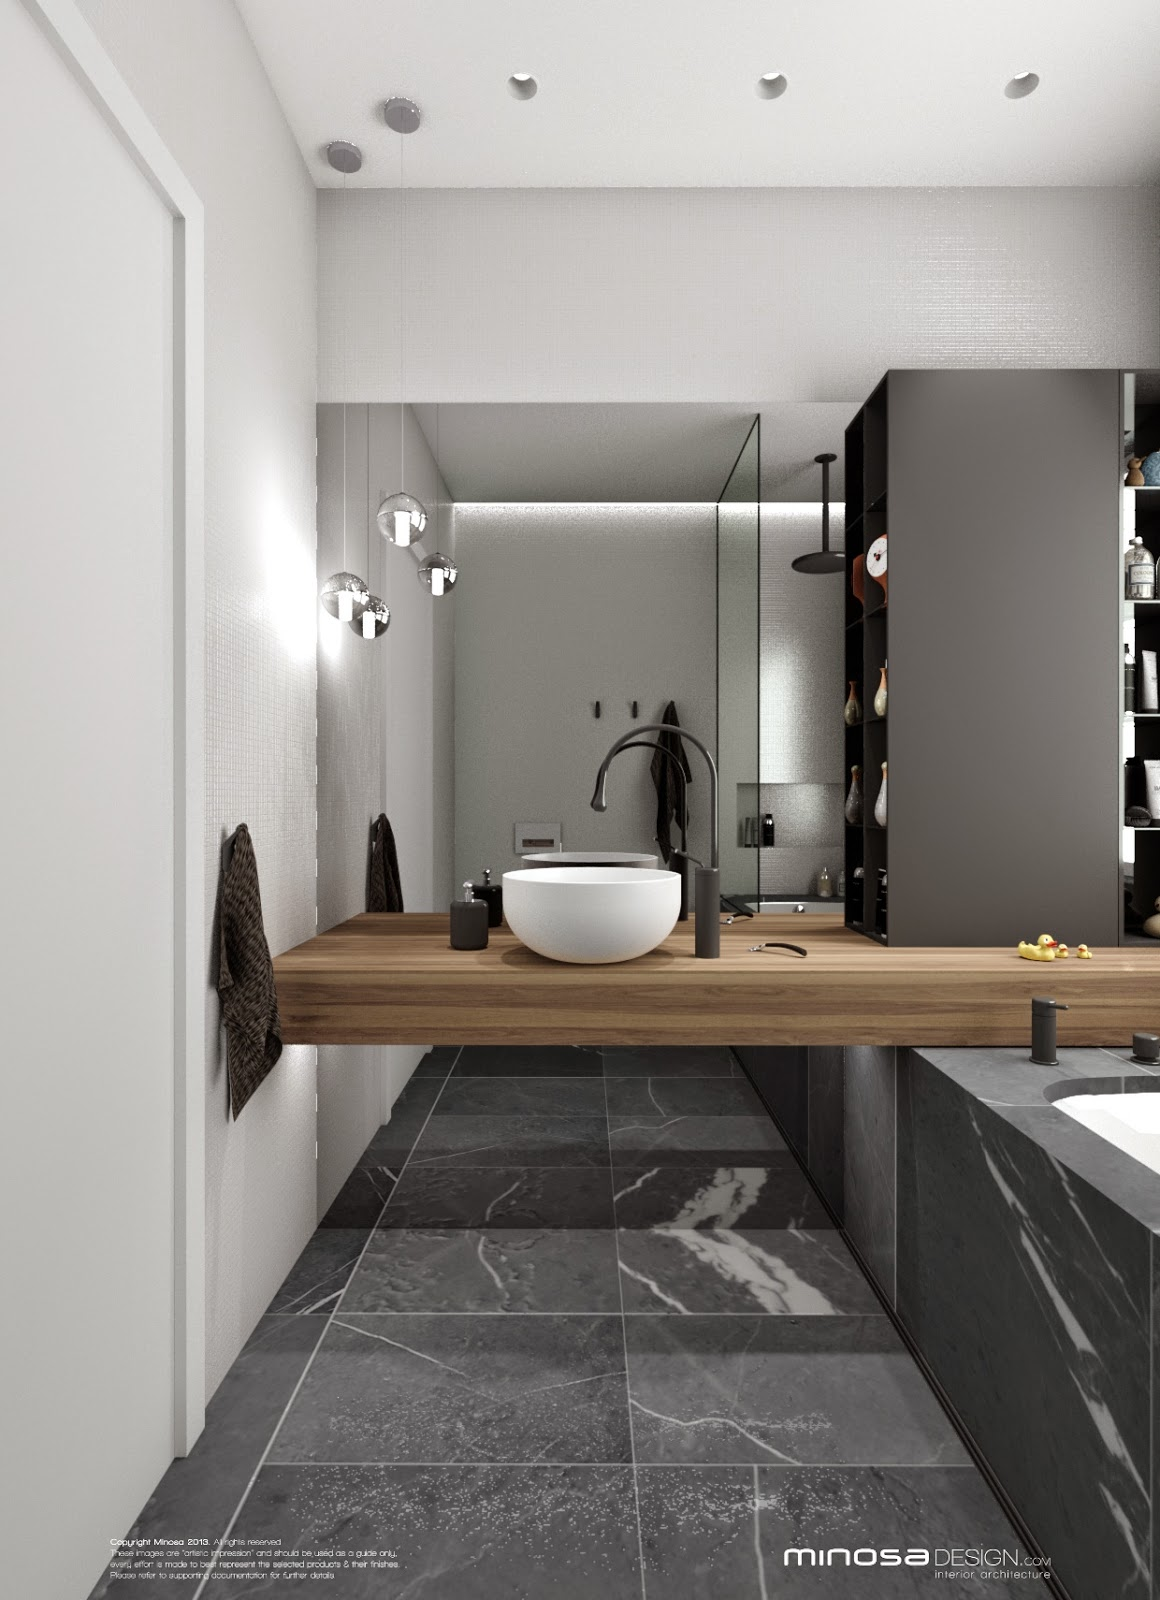 Minosa: Bathroom Design - Small space feels large on Bathroom Ideas For Small Space  id=63383